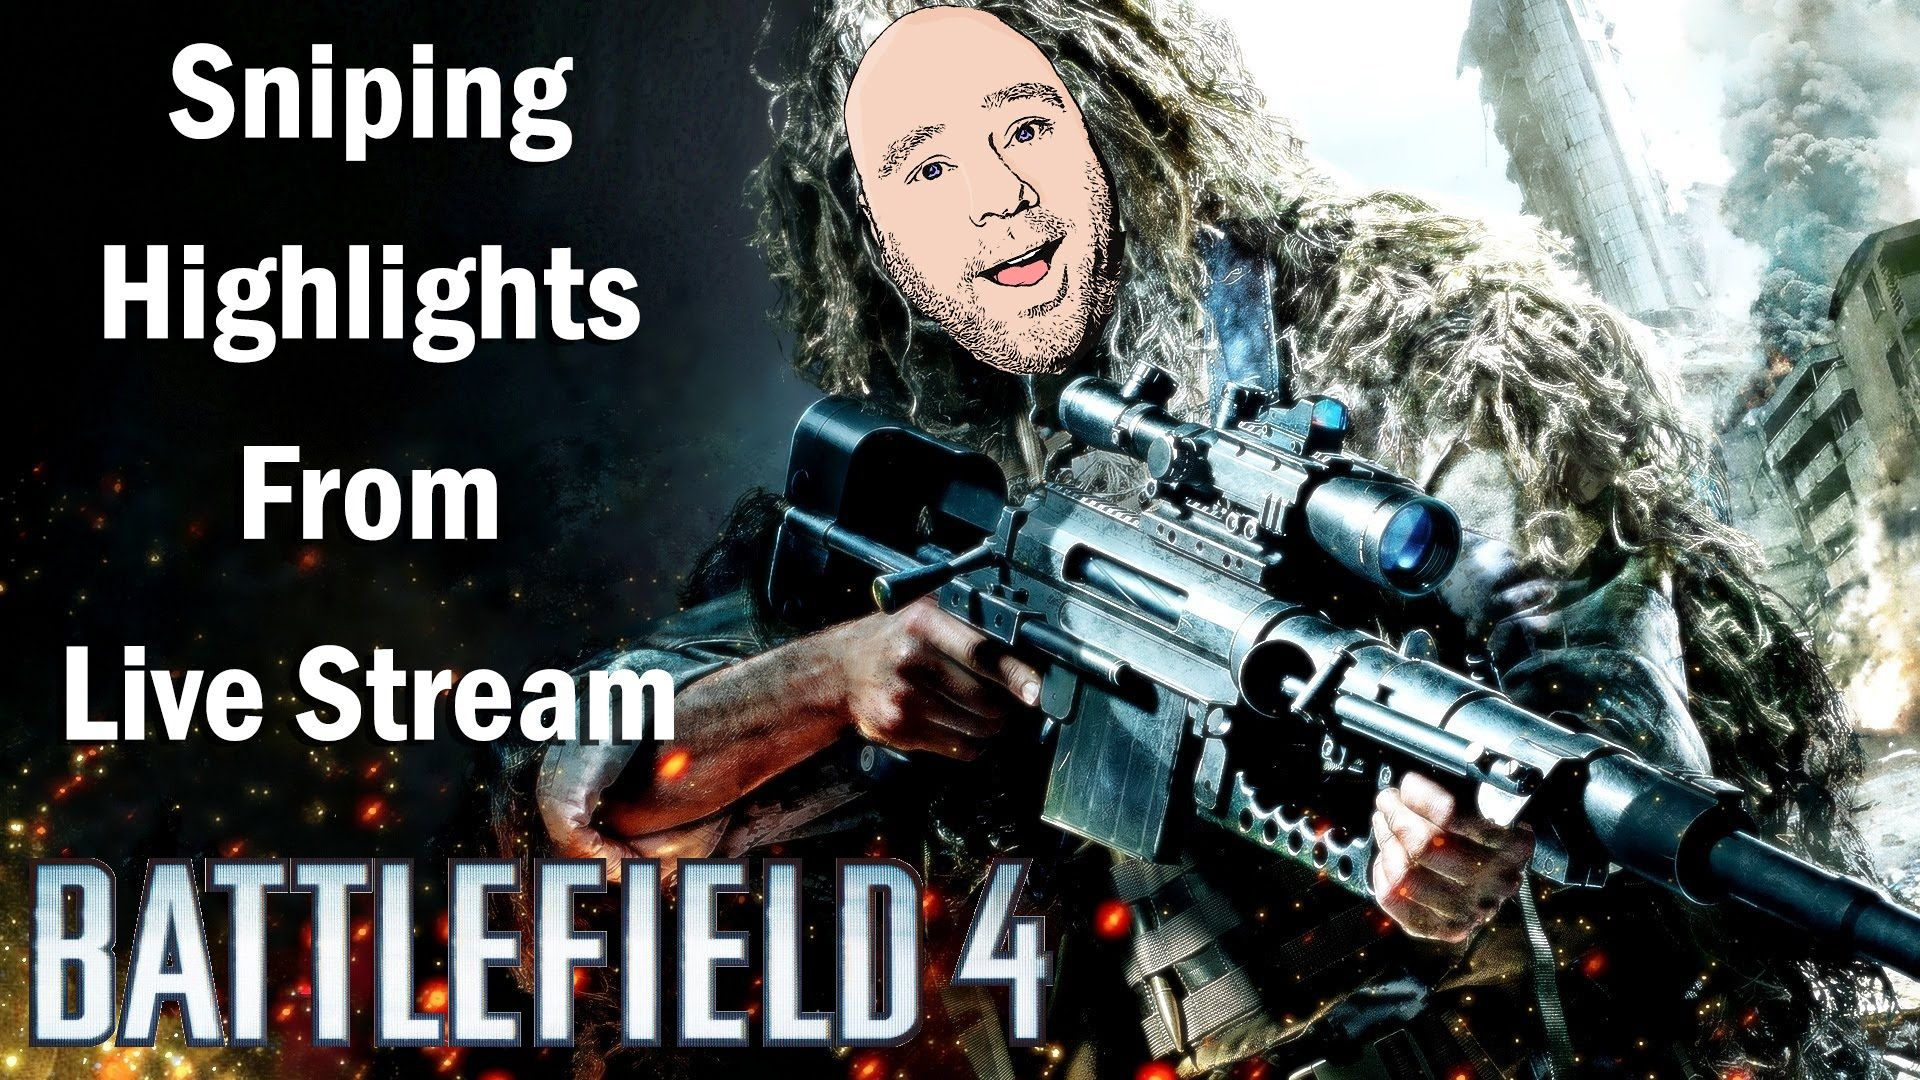 Battlefield 4 Sniping Highlights from the live show